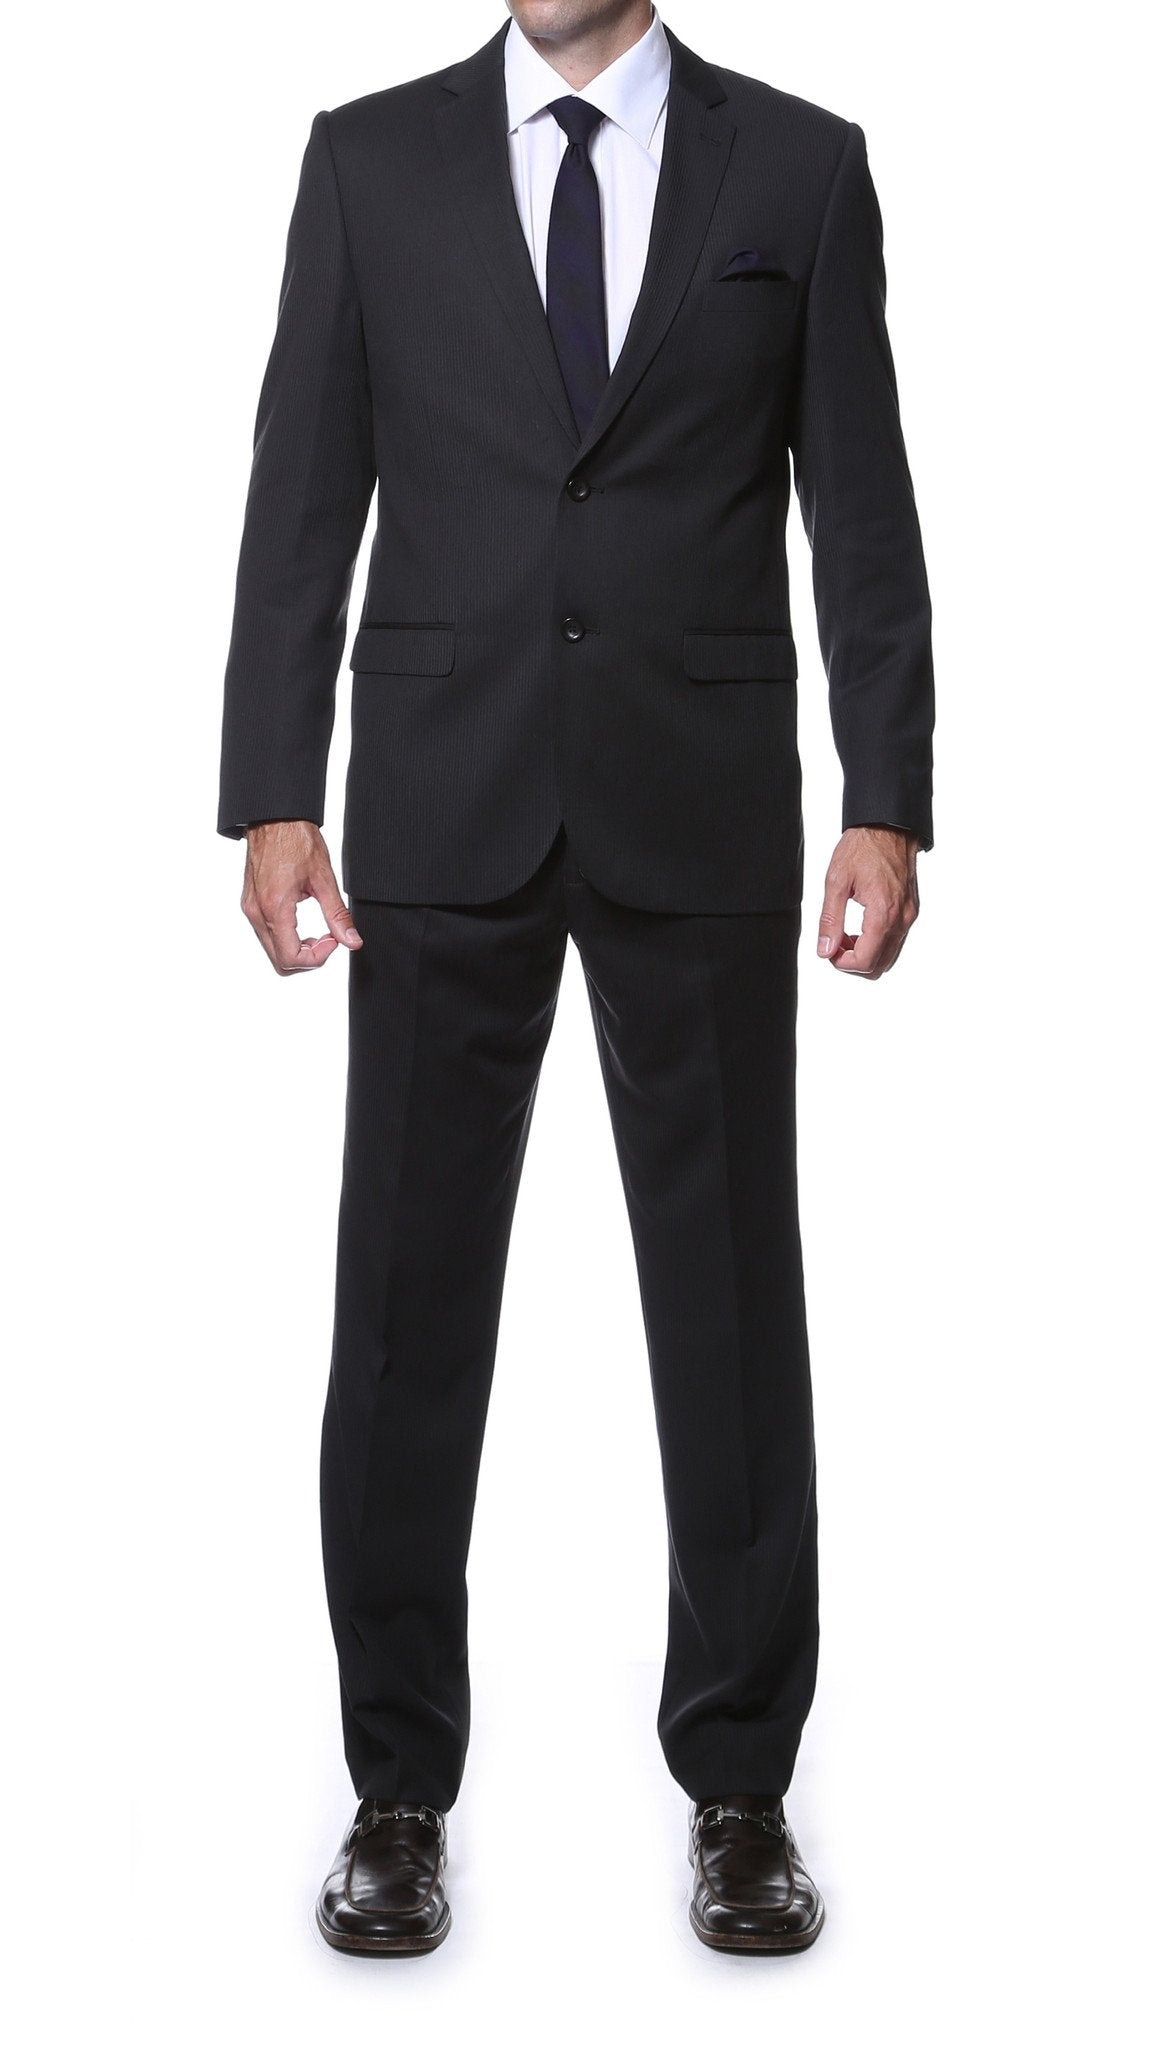 Parker Slim Fit Black Striped Tone on Tone Wool Suit - Giorgio's Menswear